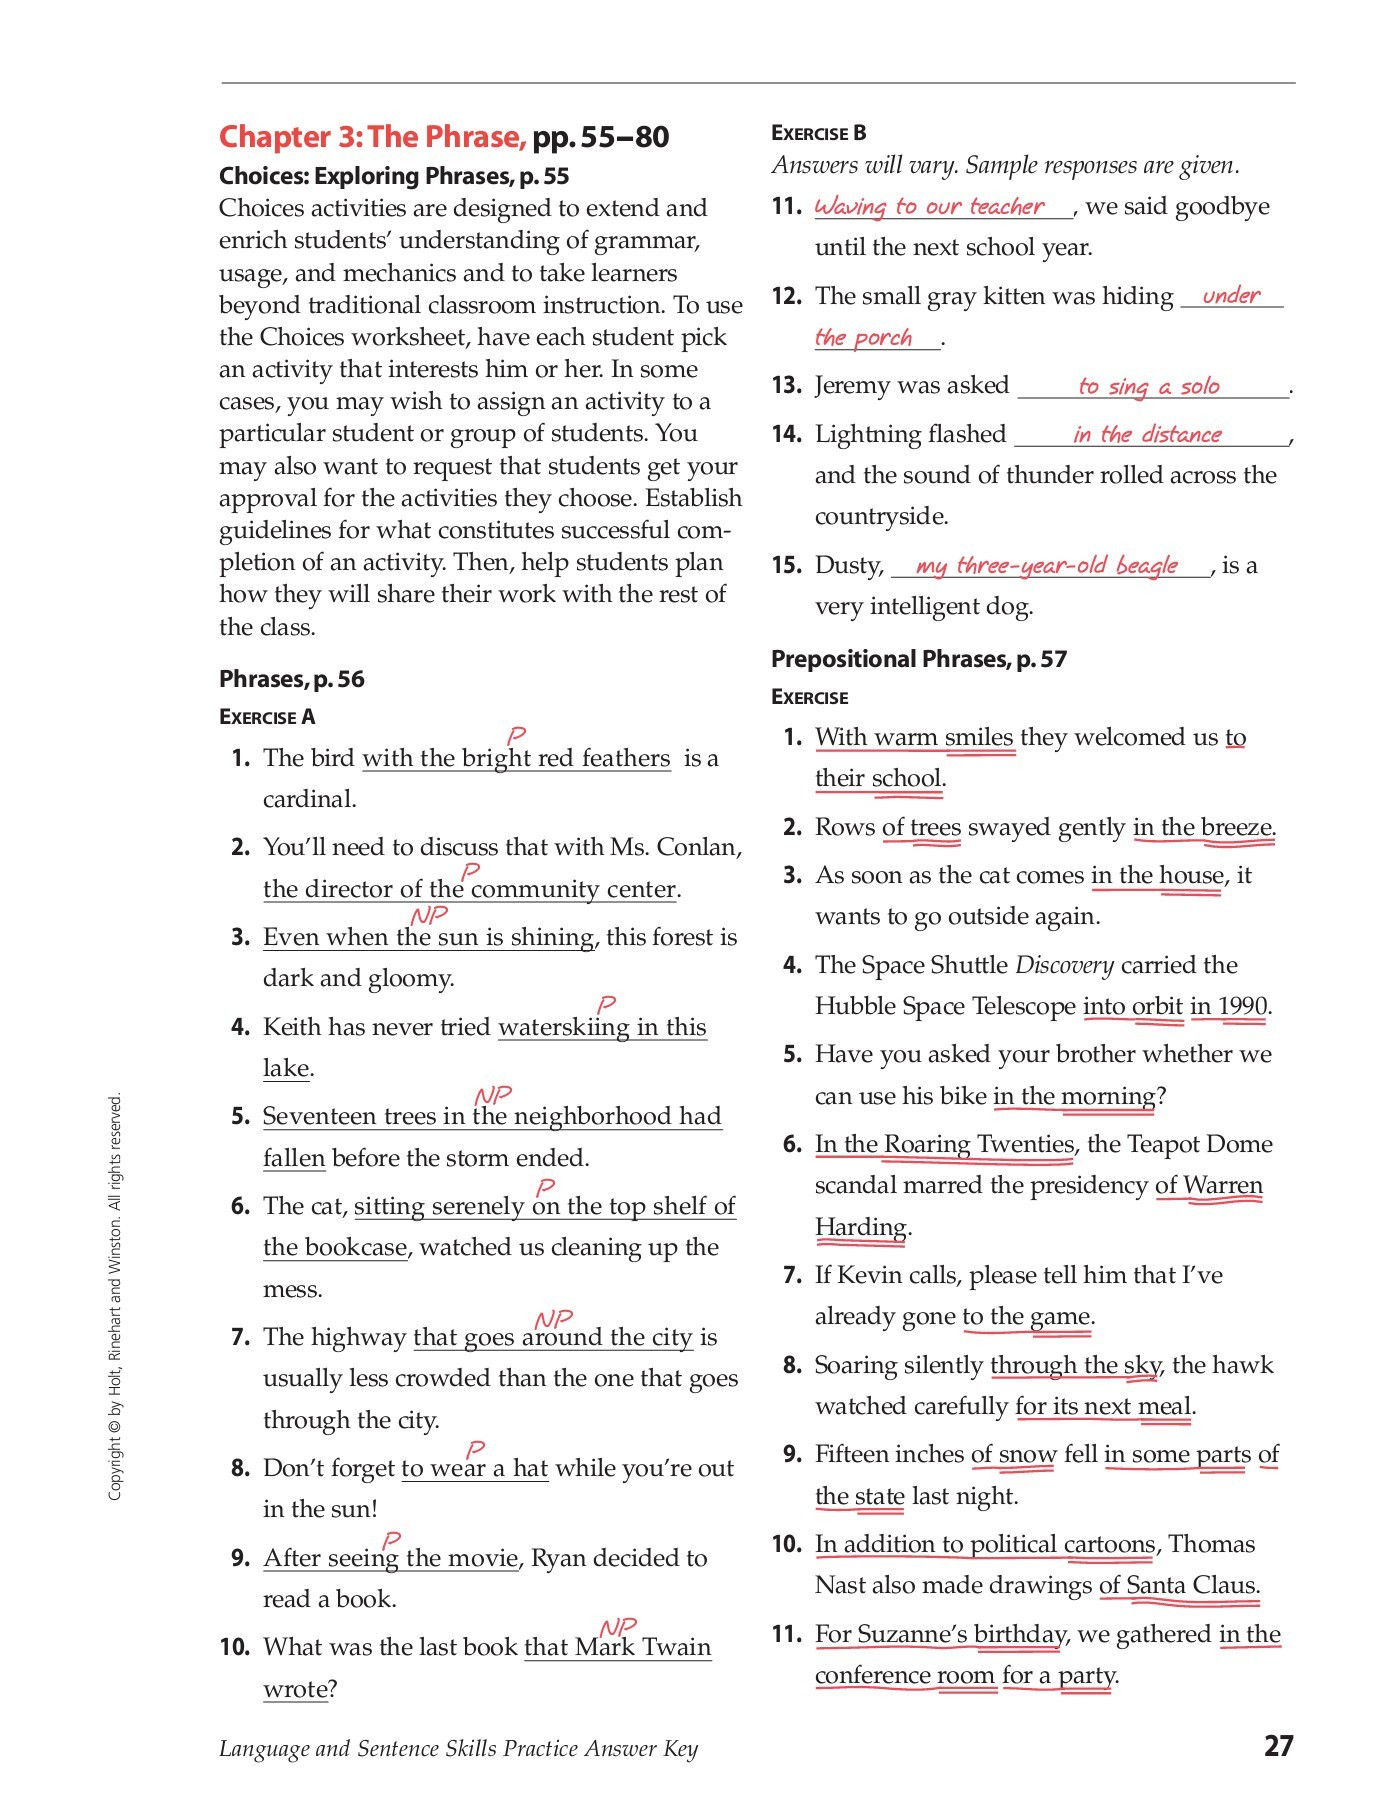 Prepositional Phrase Worksheet 4th Grade Chapter 3 the Phrase Pp 55 80 E B Hinsdale south High